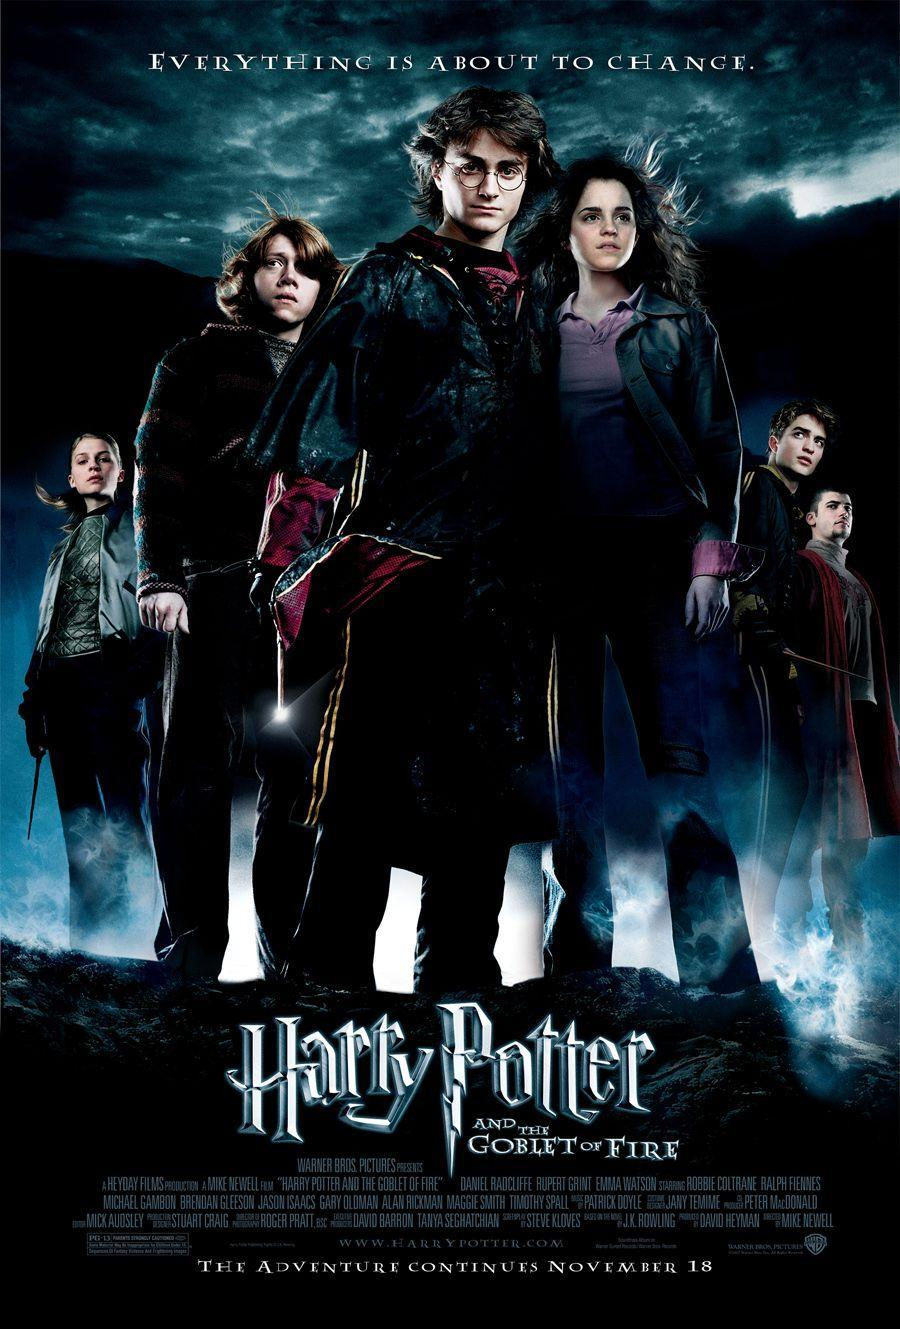 "<p>During his fourth year at Hogwarts, Harry finds himself as a competitor in the Triwizard Tournament, a contest between three wizarding schools known for being extremely dangerous. The thing is though, Harry doesn't know how he was chosen since he didn't put his name in the Goblet of Fire. Now, Harry must leave his boy-ish life behind as he faces a deadly dragon, water demons, and an enchanted maze ... all without the help of his best friend Ron. </p><p><a class=""link rapid-noclick-resp"" href=""https://www.amazon.com/gp/video/detail/B0091X21IQ/ref=atv_dp_cnc_3_2?tag=syn-yahoo-20&ascsubtag=%5Bartid%7C10055.g.33625559%5Bsrc%7Cyahoo-us"" rel=""nofollow noopener"" target=""_blank"" data-ylk=""slk:WATCH NOW"">WATCH NOW</a></p>"